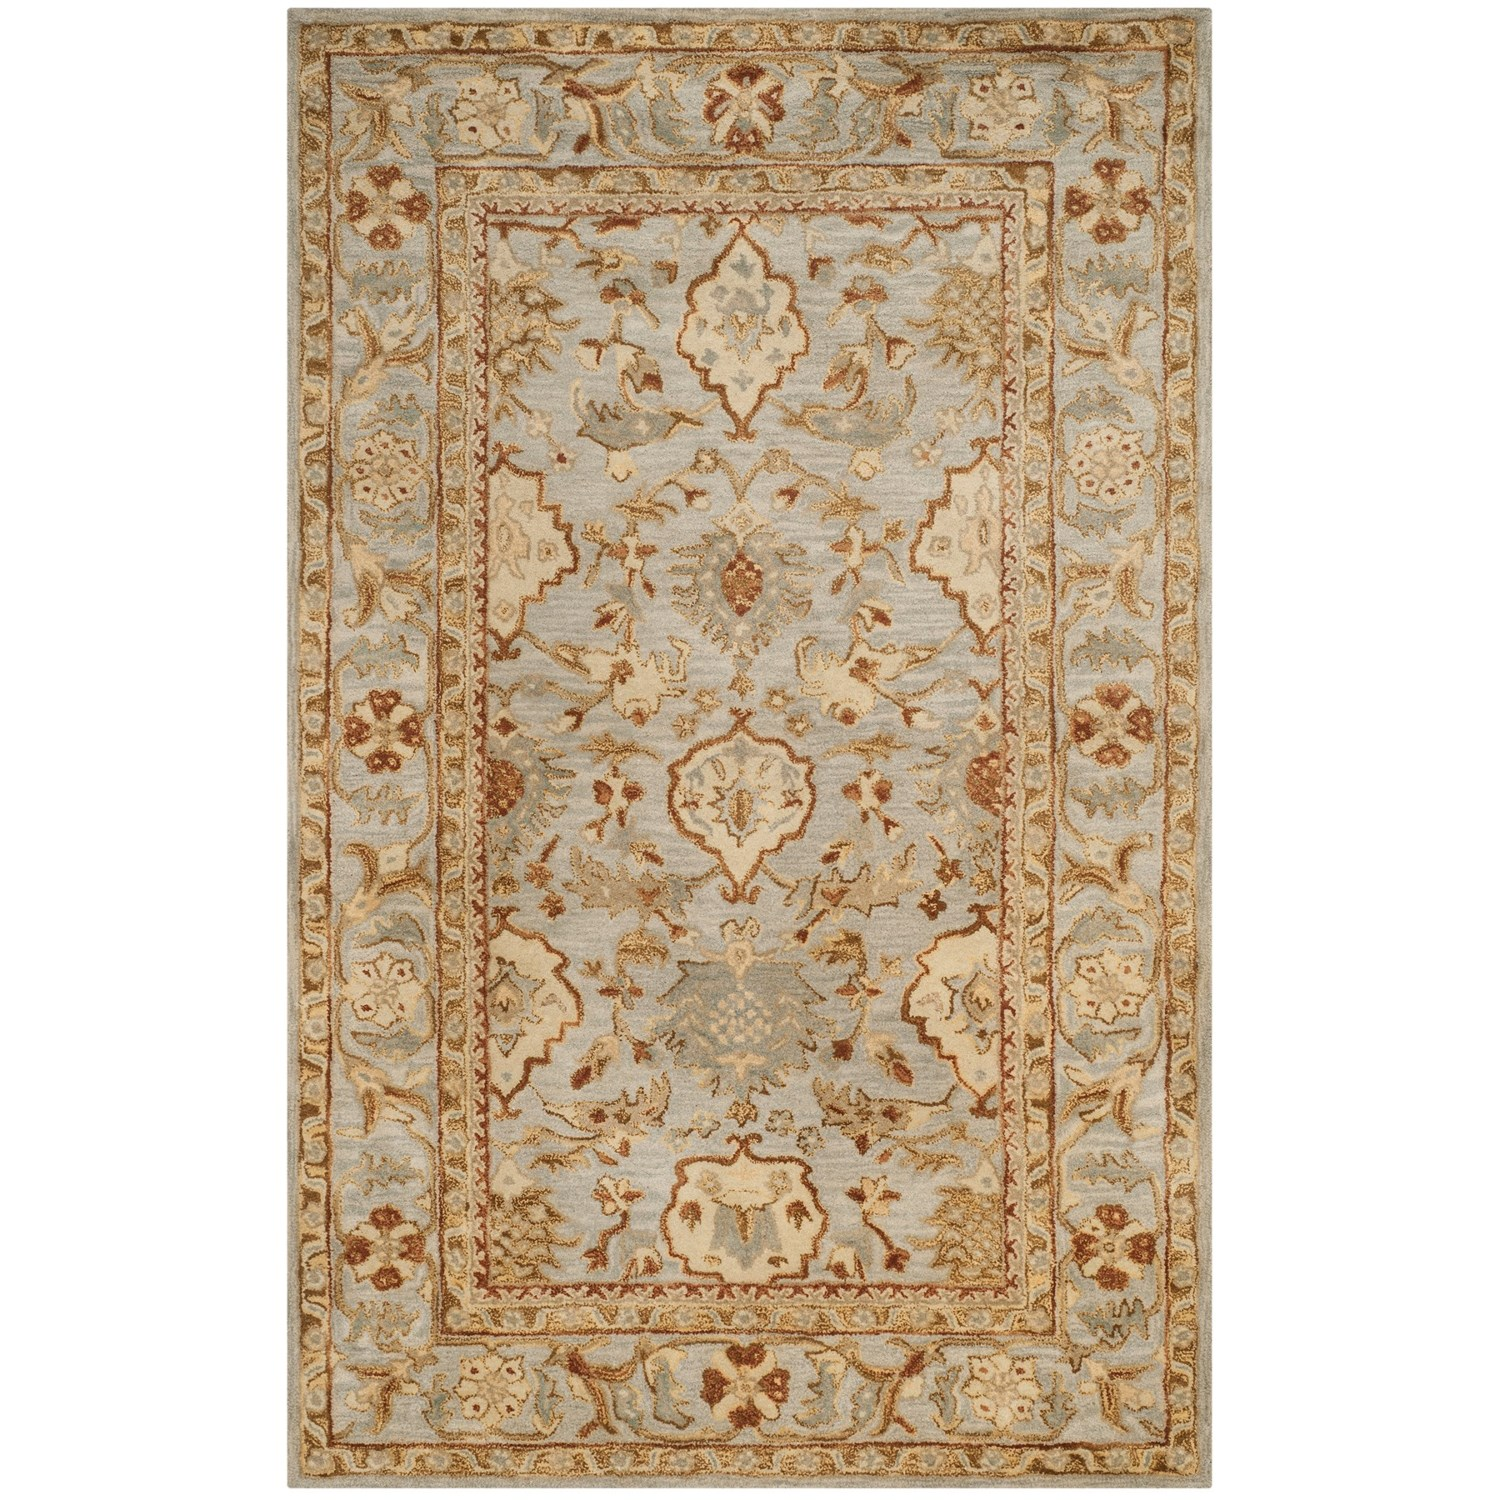 Stella Collection Hand Tufted Area Rug In Beige Light: Safavieh Antiquity Collection Light Grey Area Rug